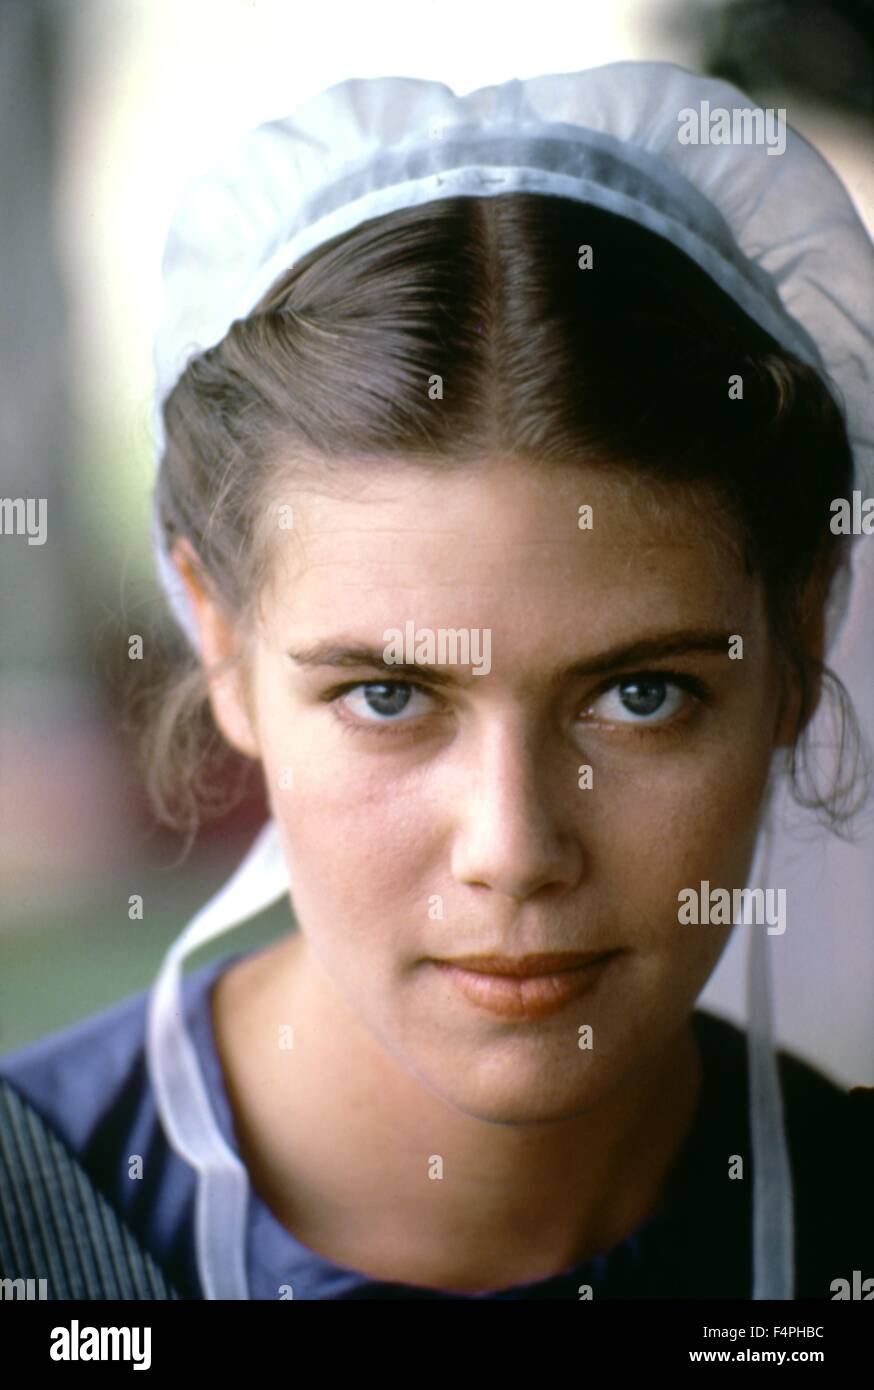 Kelly McGillis nude (55 photos), Tits, Hot, Feet, in bikini 2006